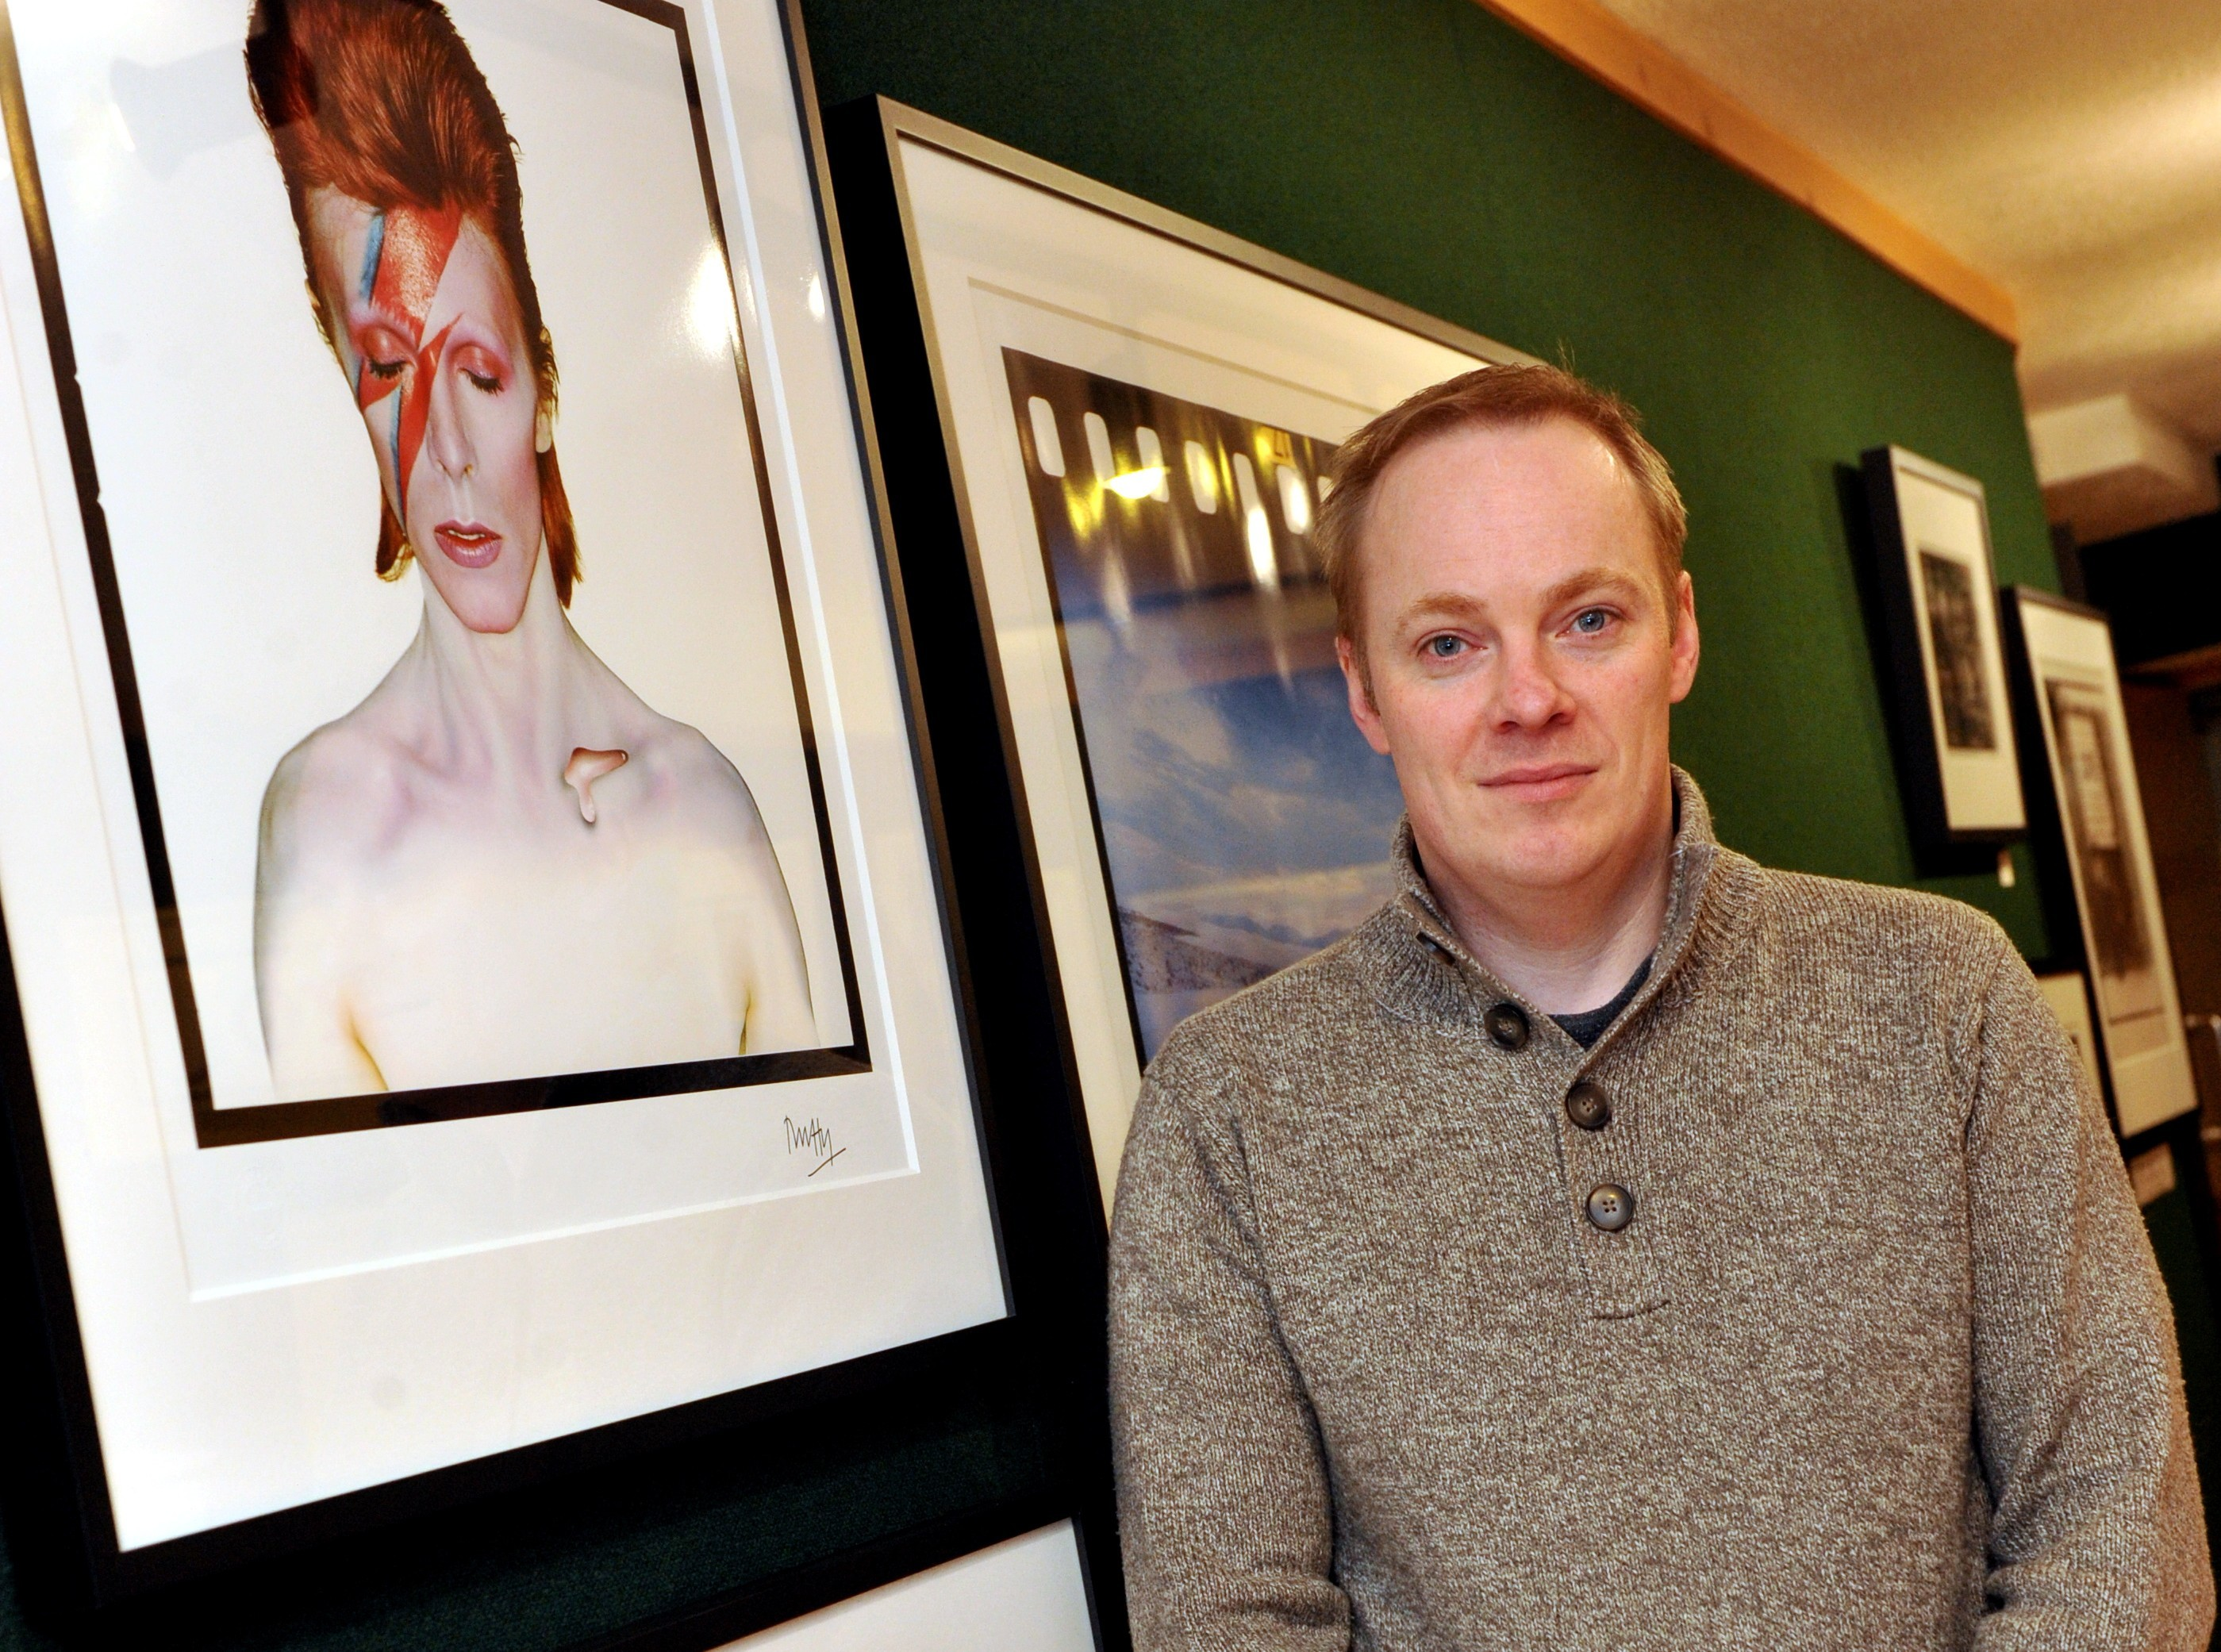 Garvan Murray of the Artists Gallery with some of the David Bowie prints.